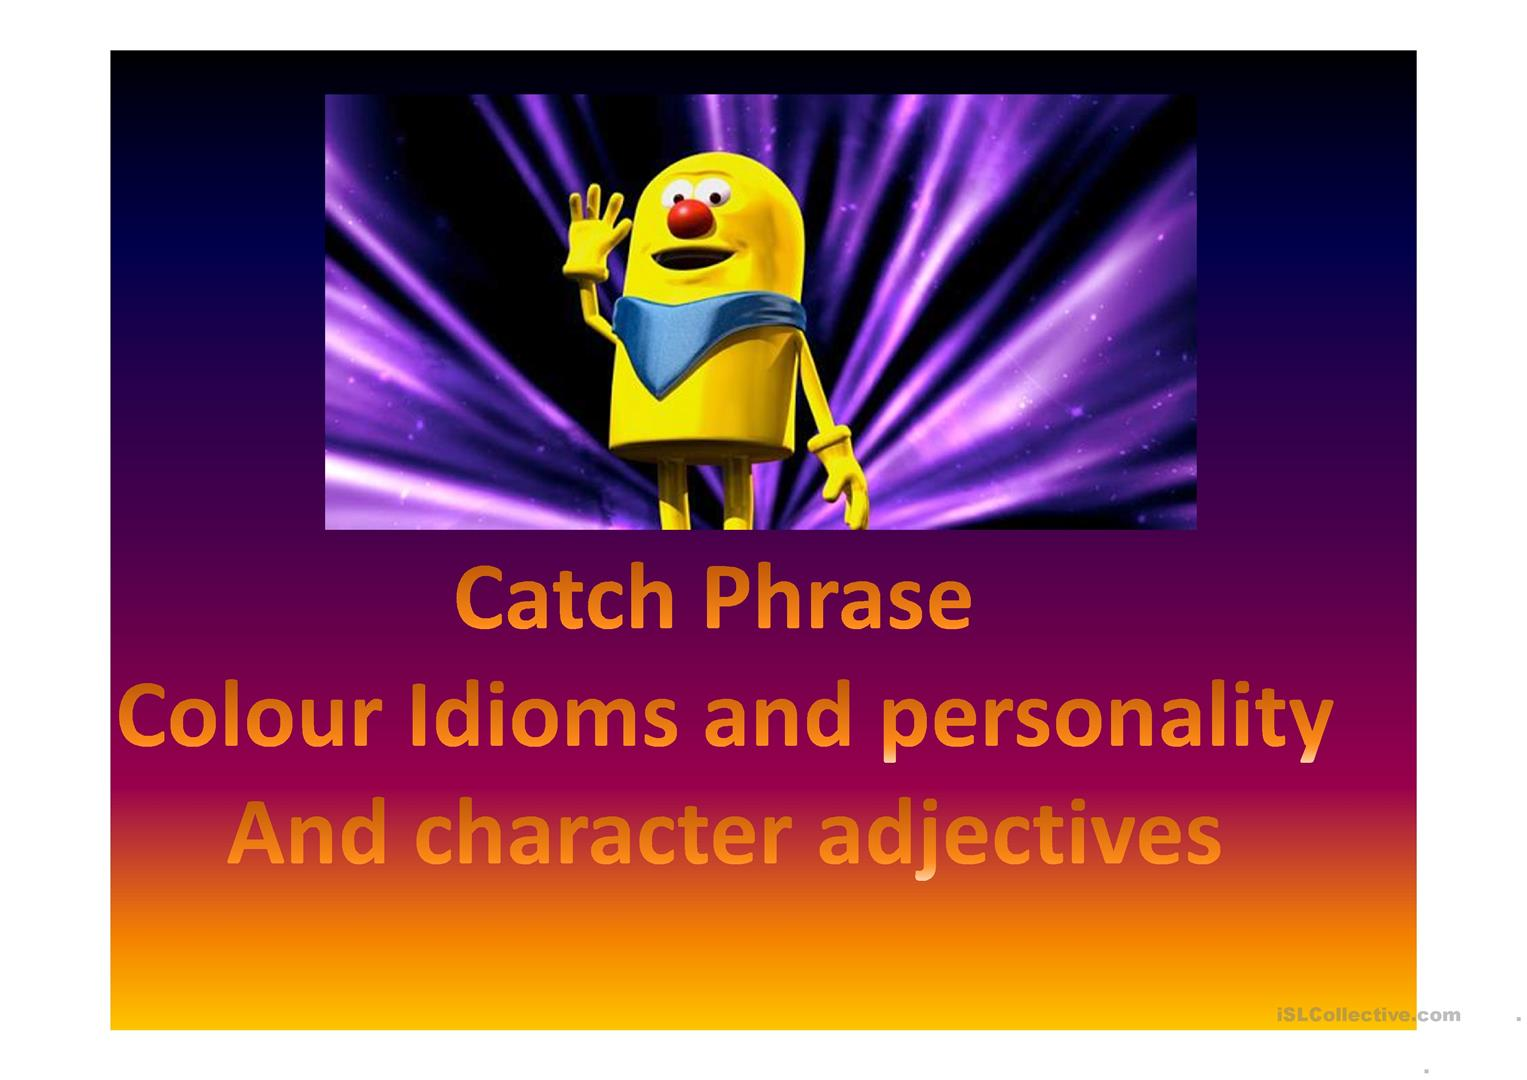 Character And Personality Adjectives And Colour Idioms